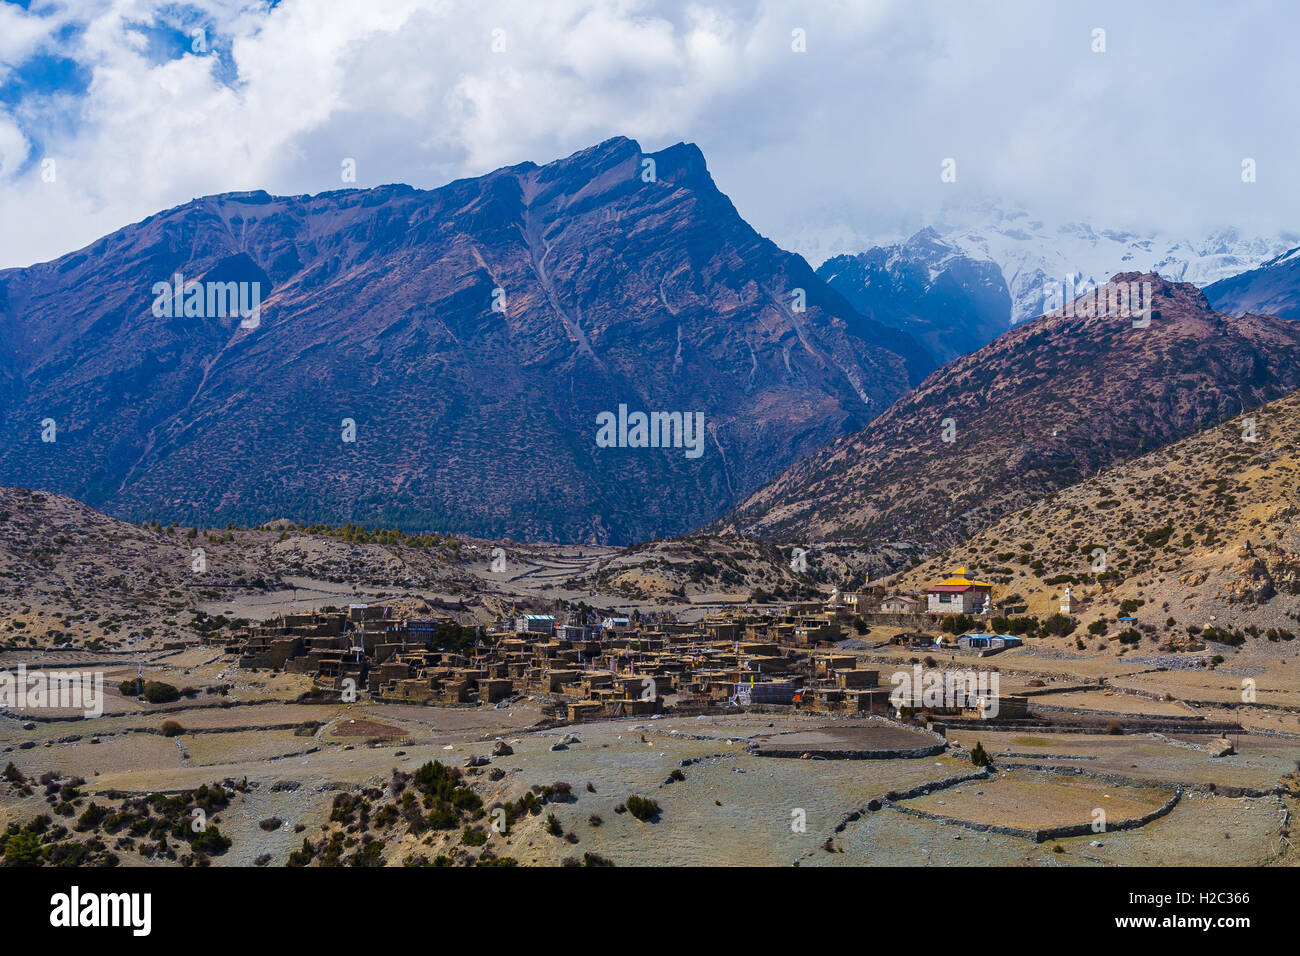 Landscape View Himalays Mountains Village.Asia Nature Morning Viewpoint.Mountain Trekking Photo.Horizontal picture.Stock Photo